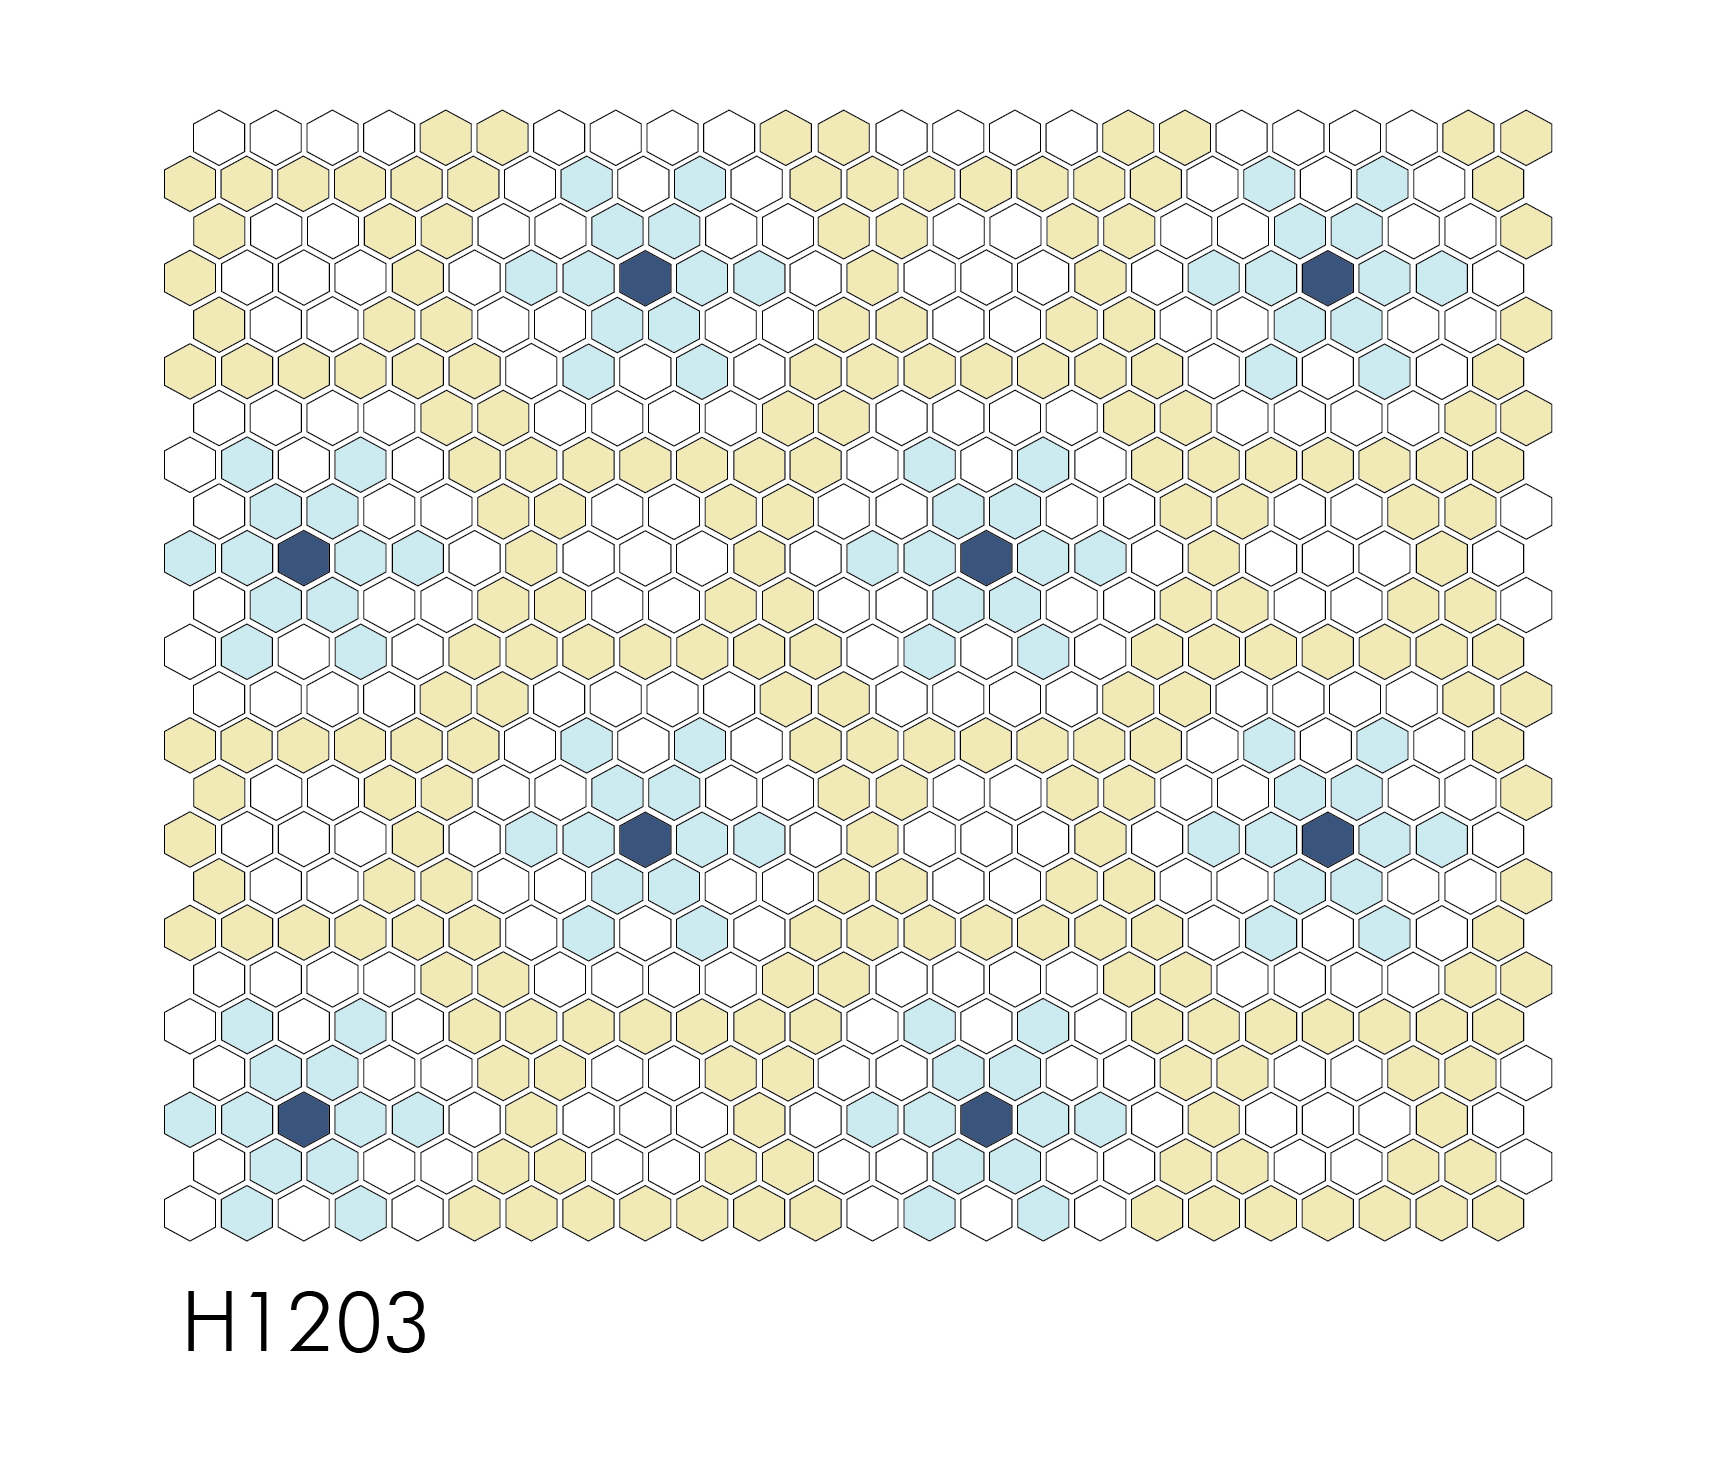 "H1203 Falling Snow 1"" Hexagon"